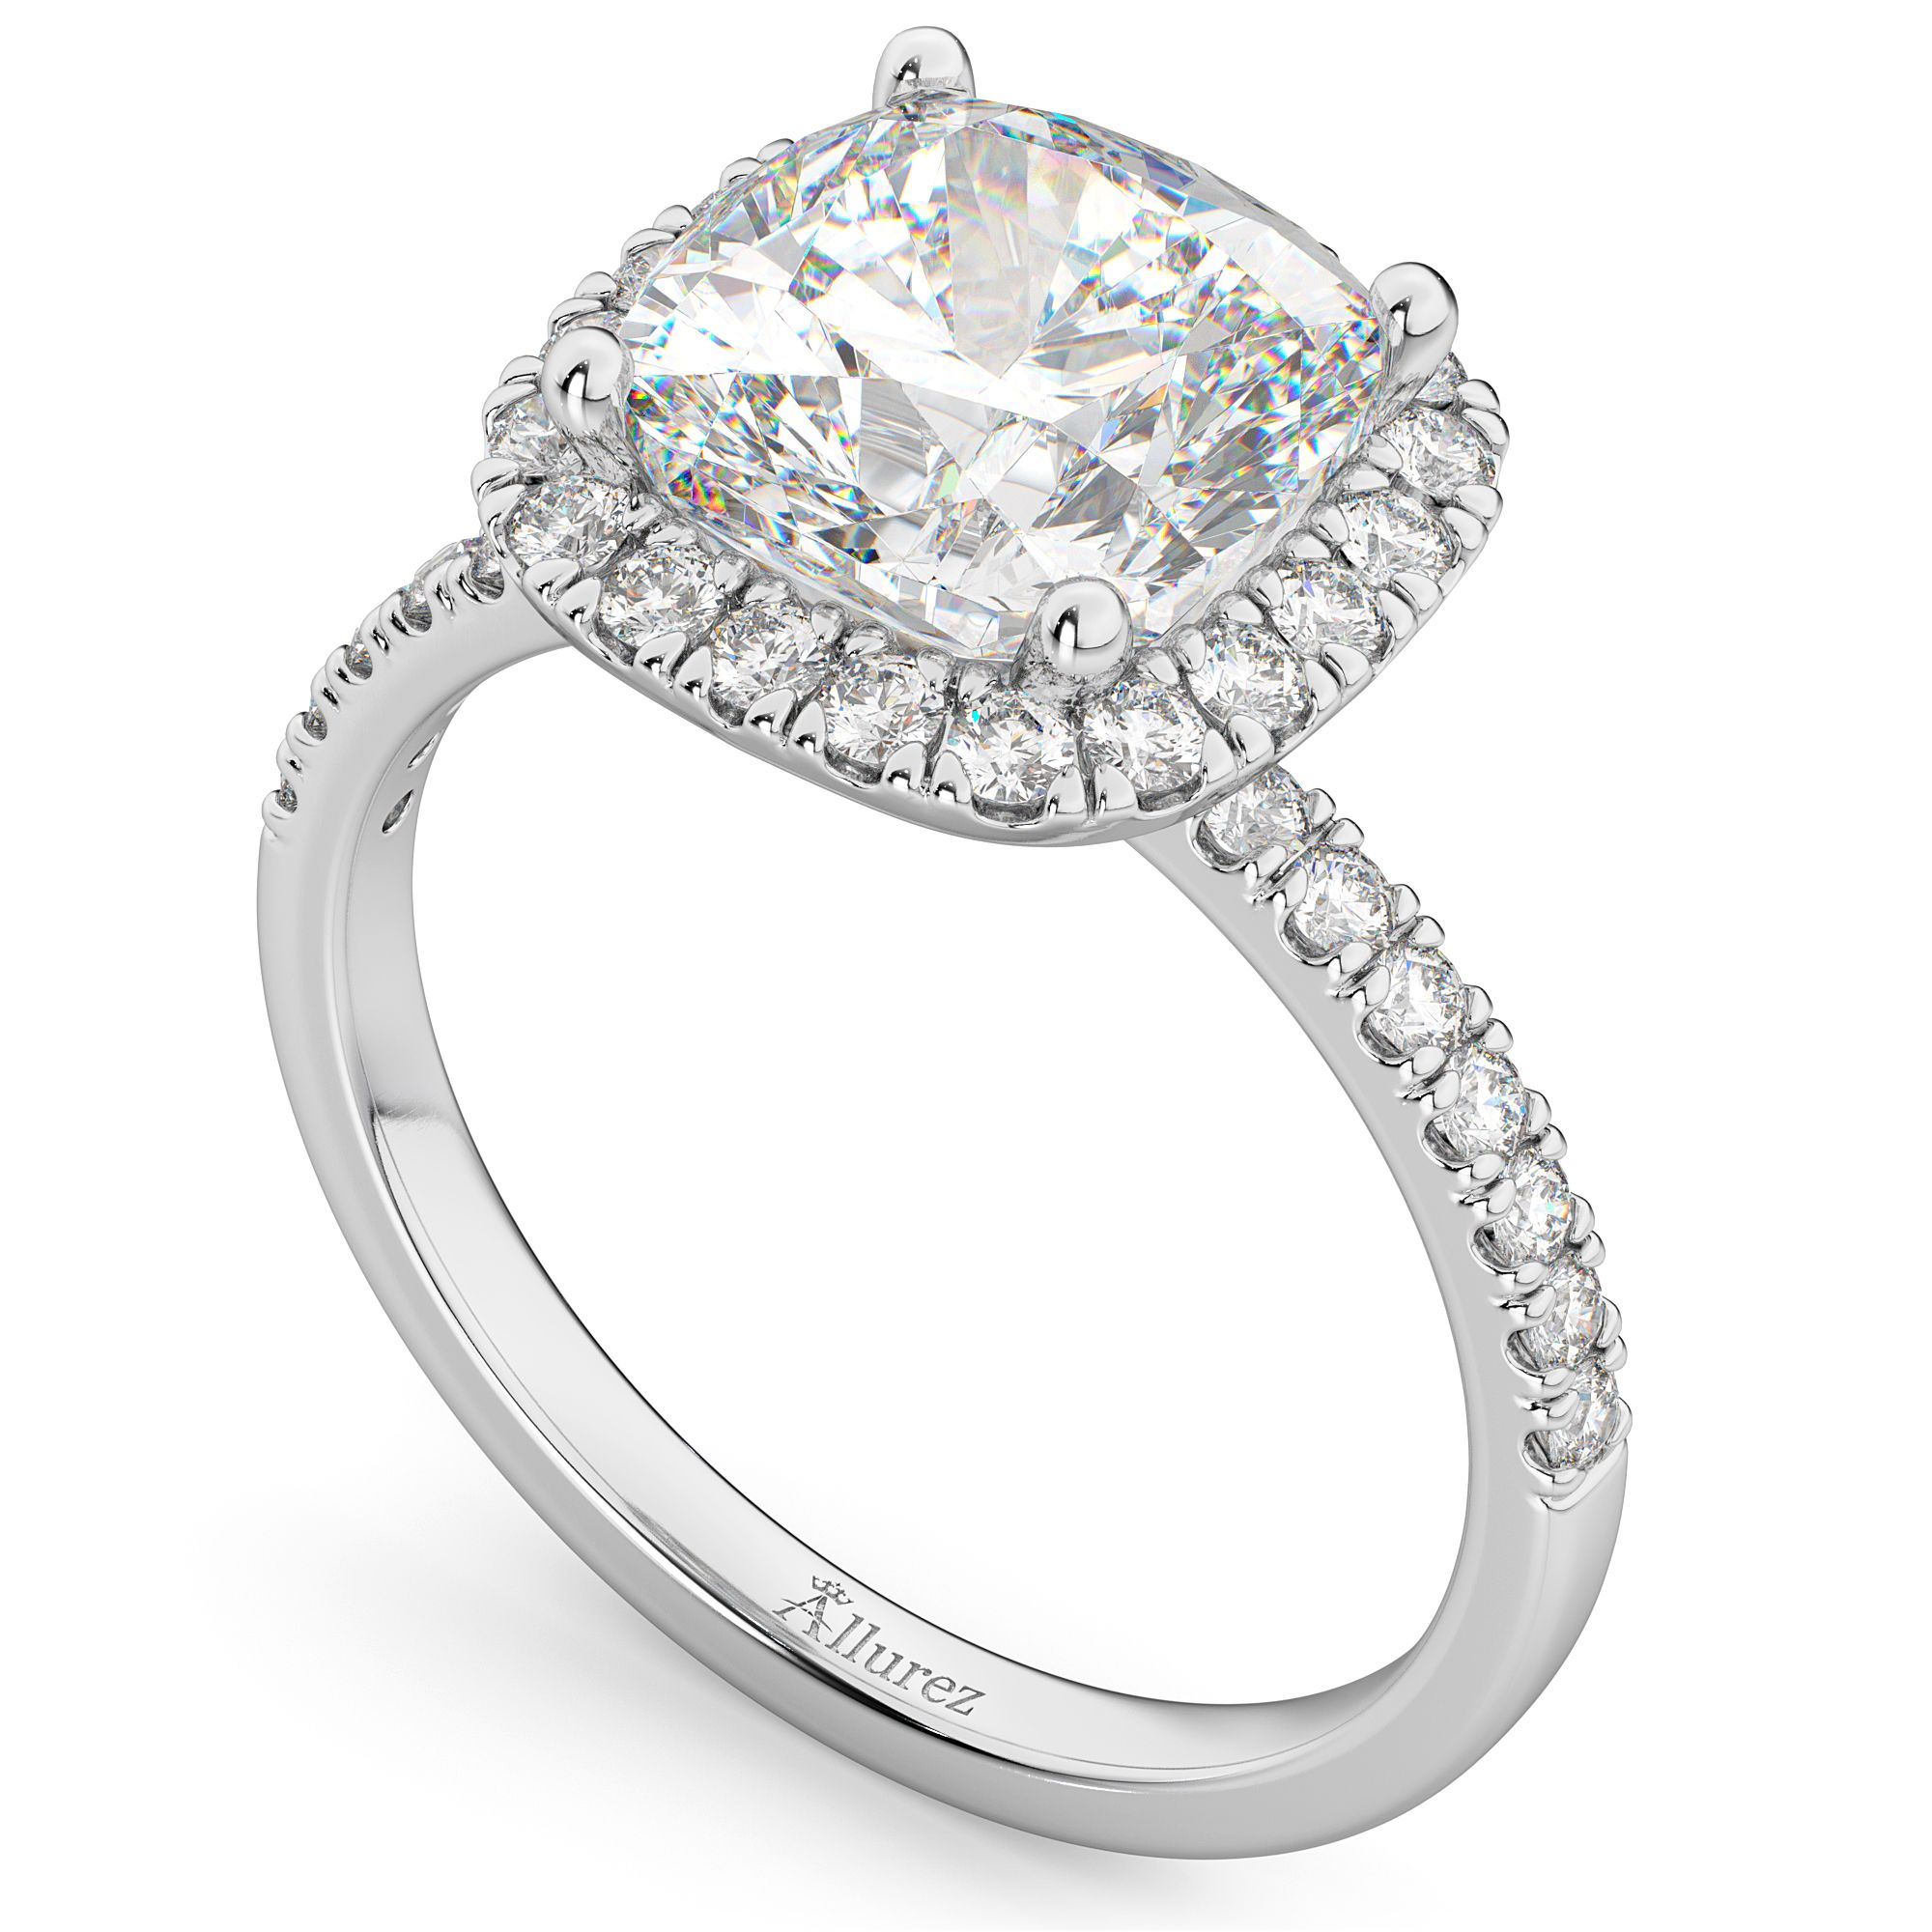 2020 New Rings For Women Unique Emerald Cut Engagement Rings Marriage Jewellery Set Platinum Solitaire Ring Jewellery Shop Near Me